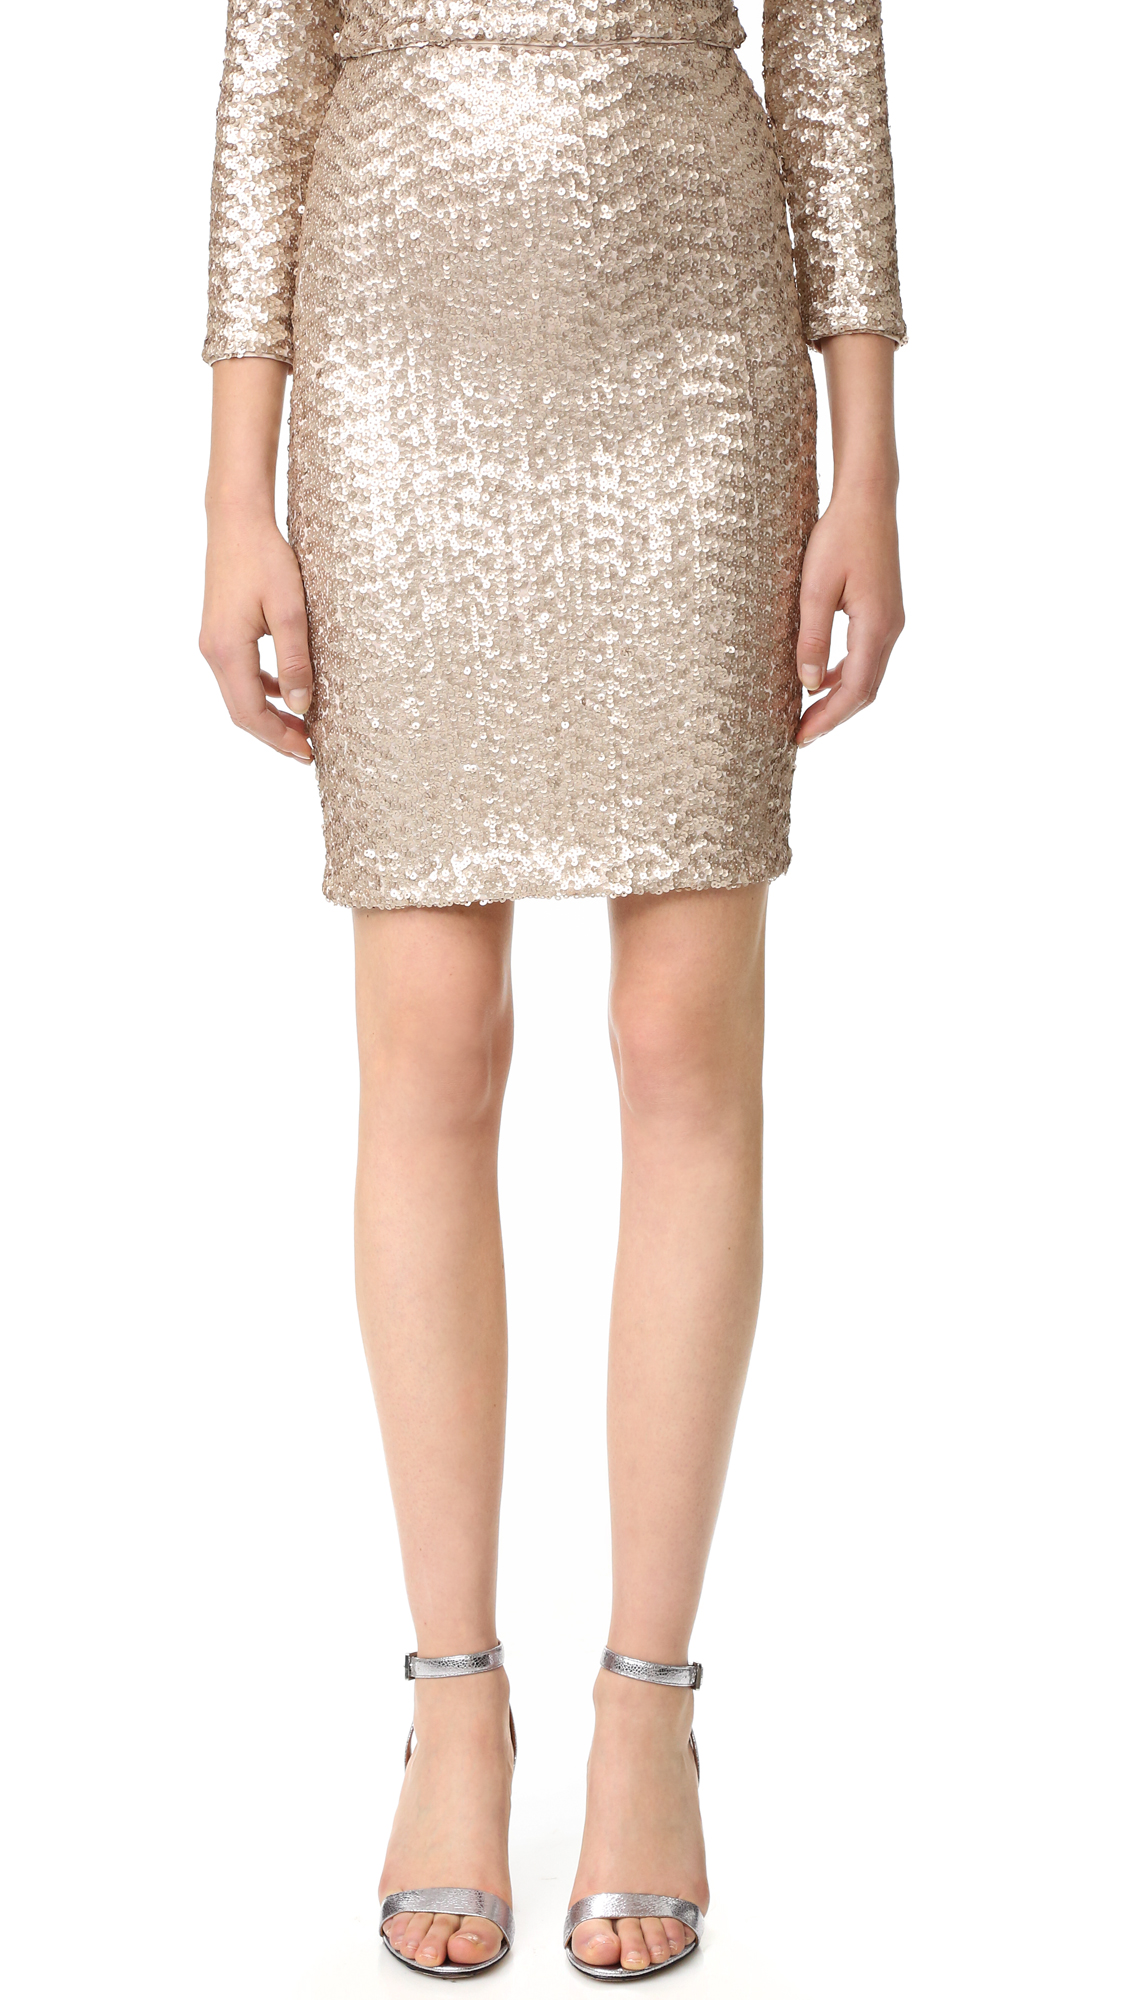 Alice + Olivia Ramos Sequin Midi Skirt - Nude Pink at Shopbop